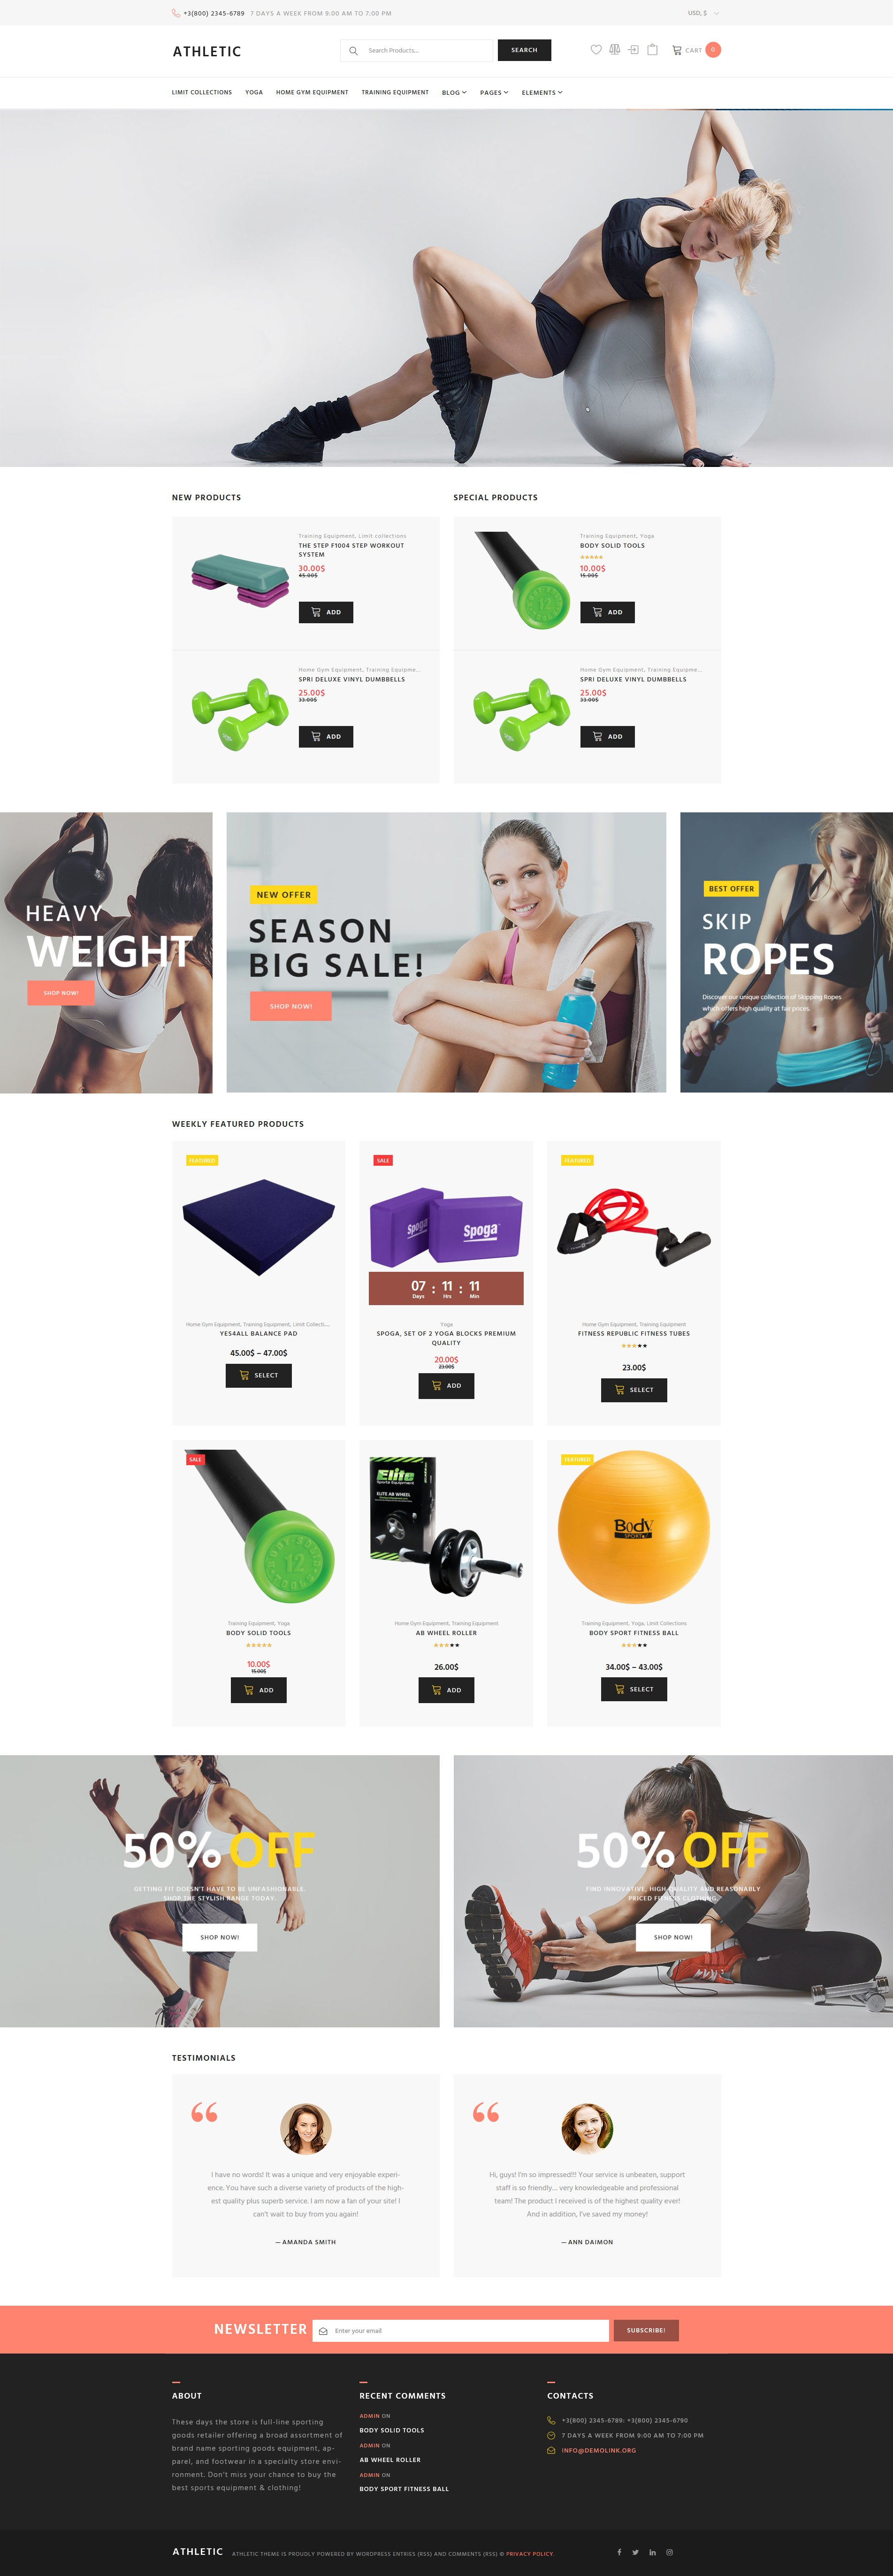 Athletic - Sports Store №61271 - скриншот